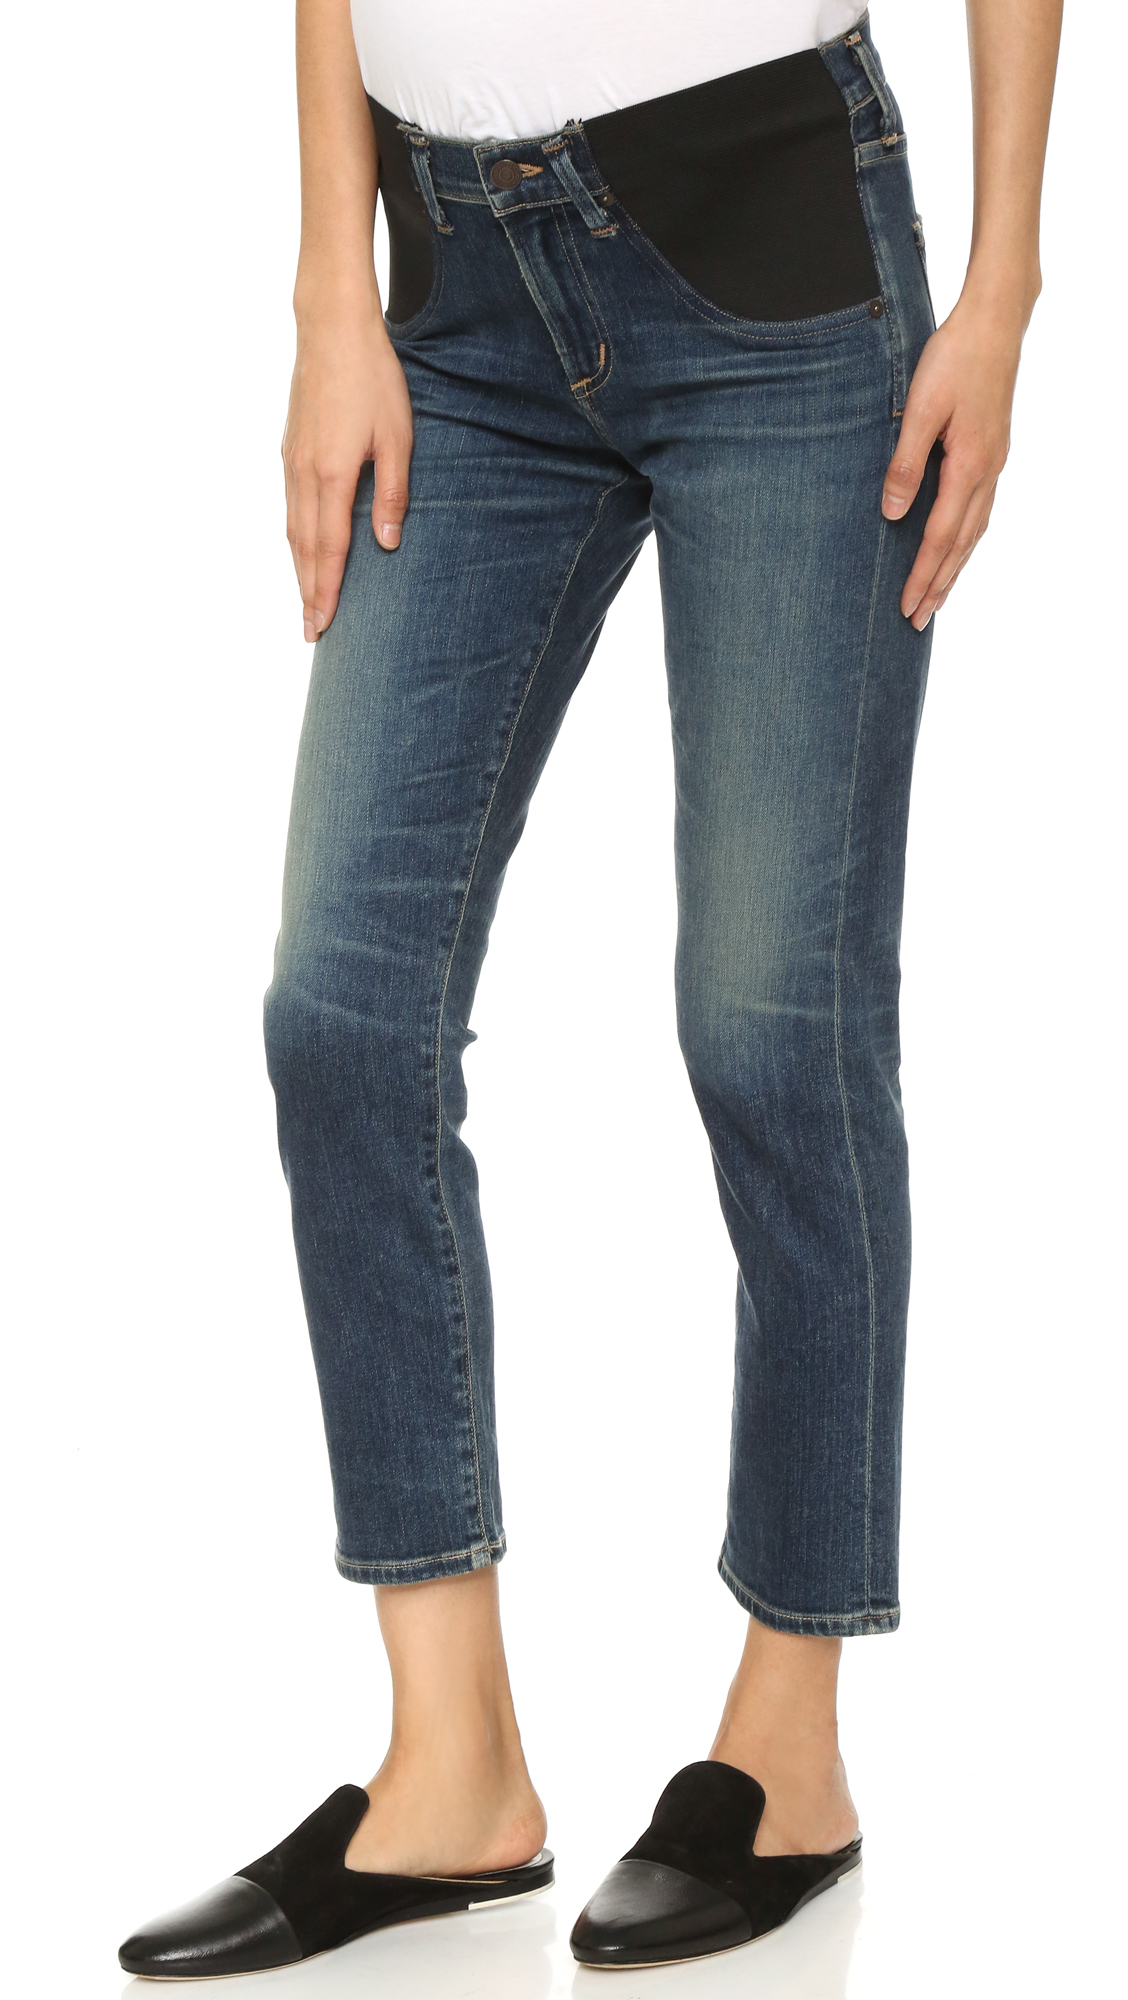 Citizens Of Humanity The Principle Maternity Girlfriend Jeans - Prussian Blue at Shopbop